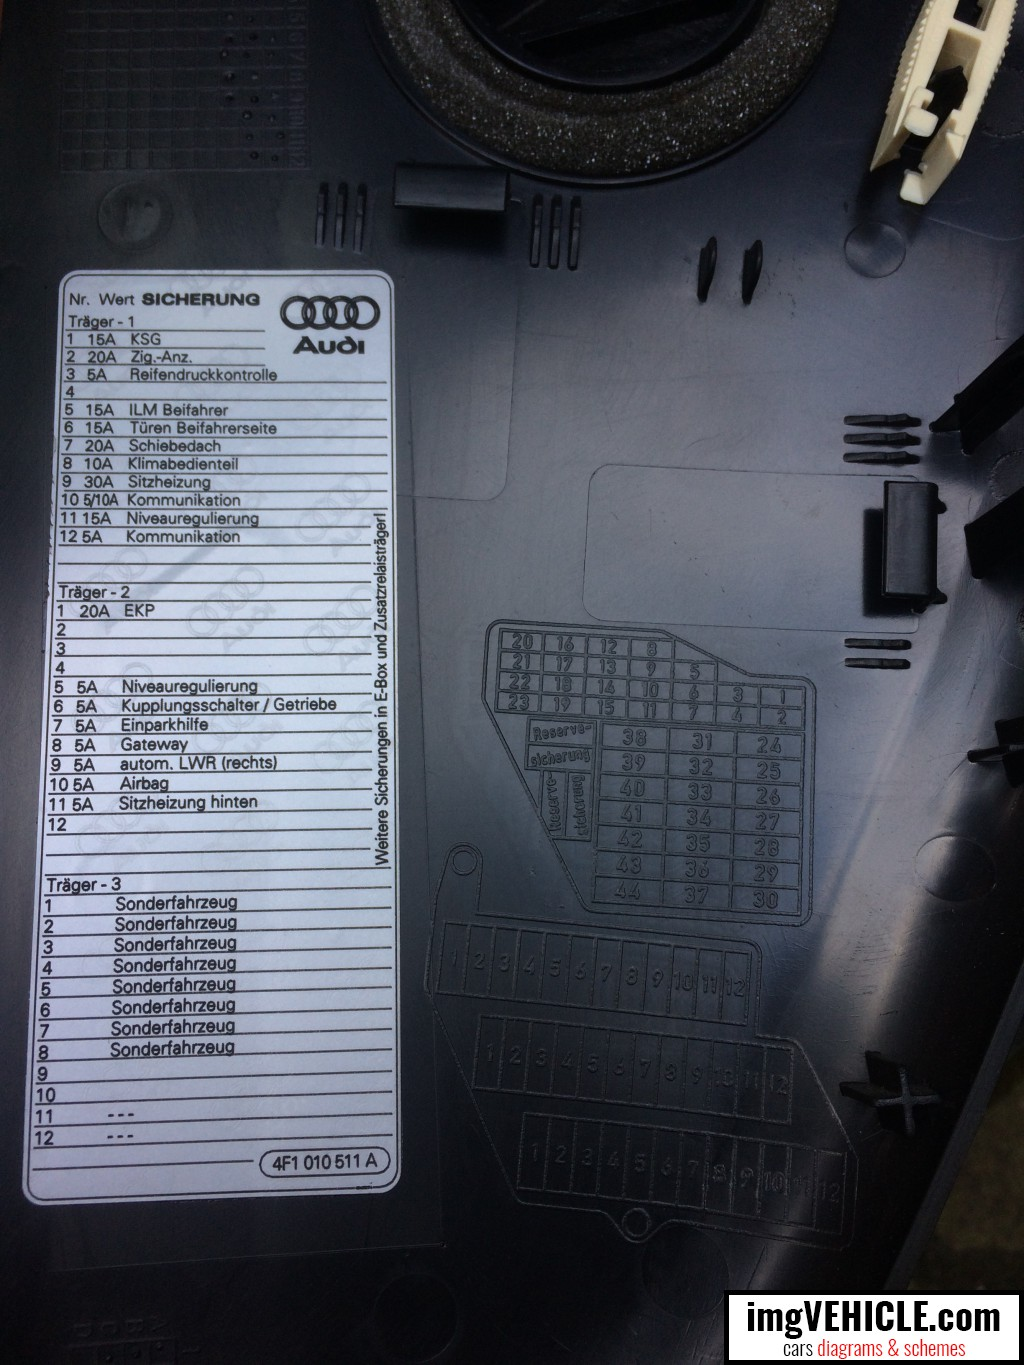 2006 Audi A6 Fuse Box Wiring Diagram Schematics Bmw Z4 C6 Diagrams Schemes Imgvehicle Com